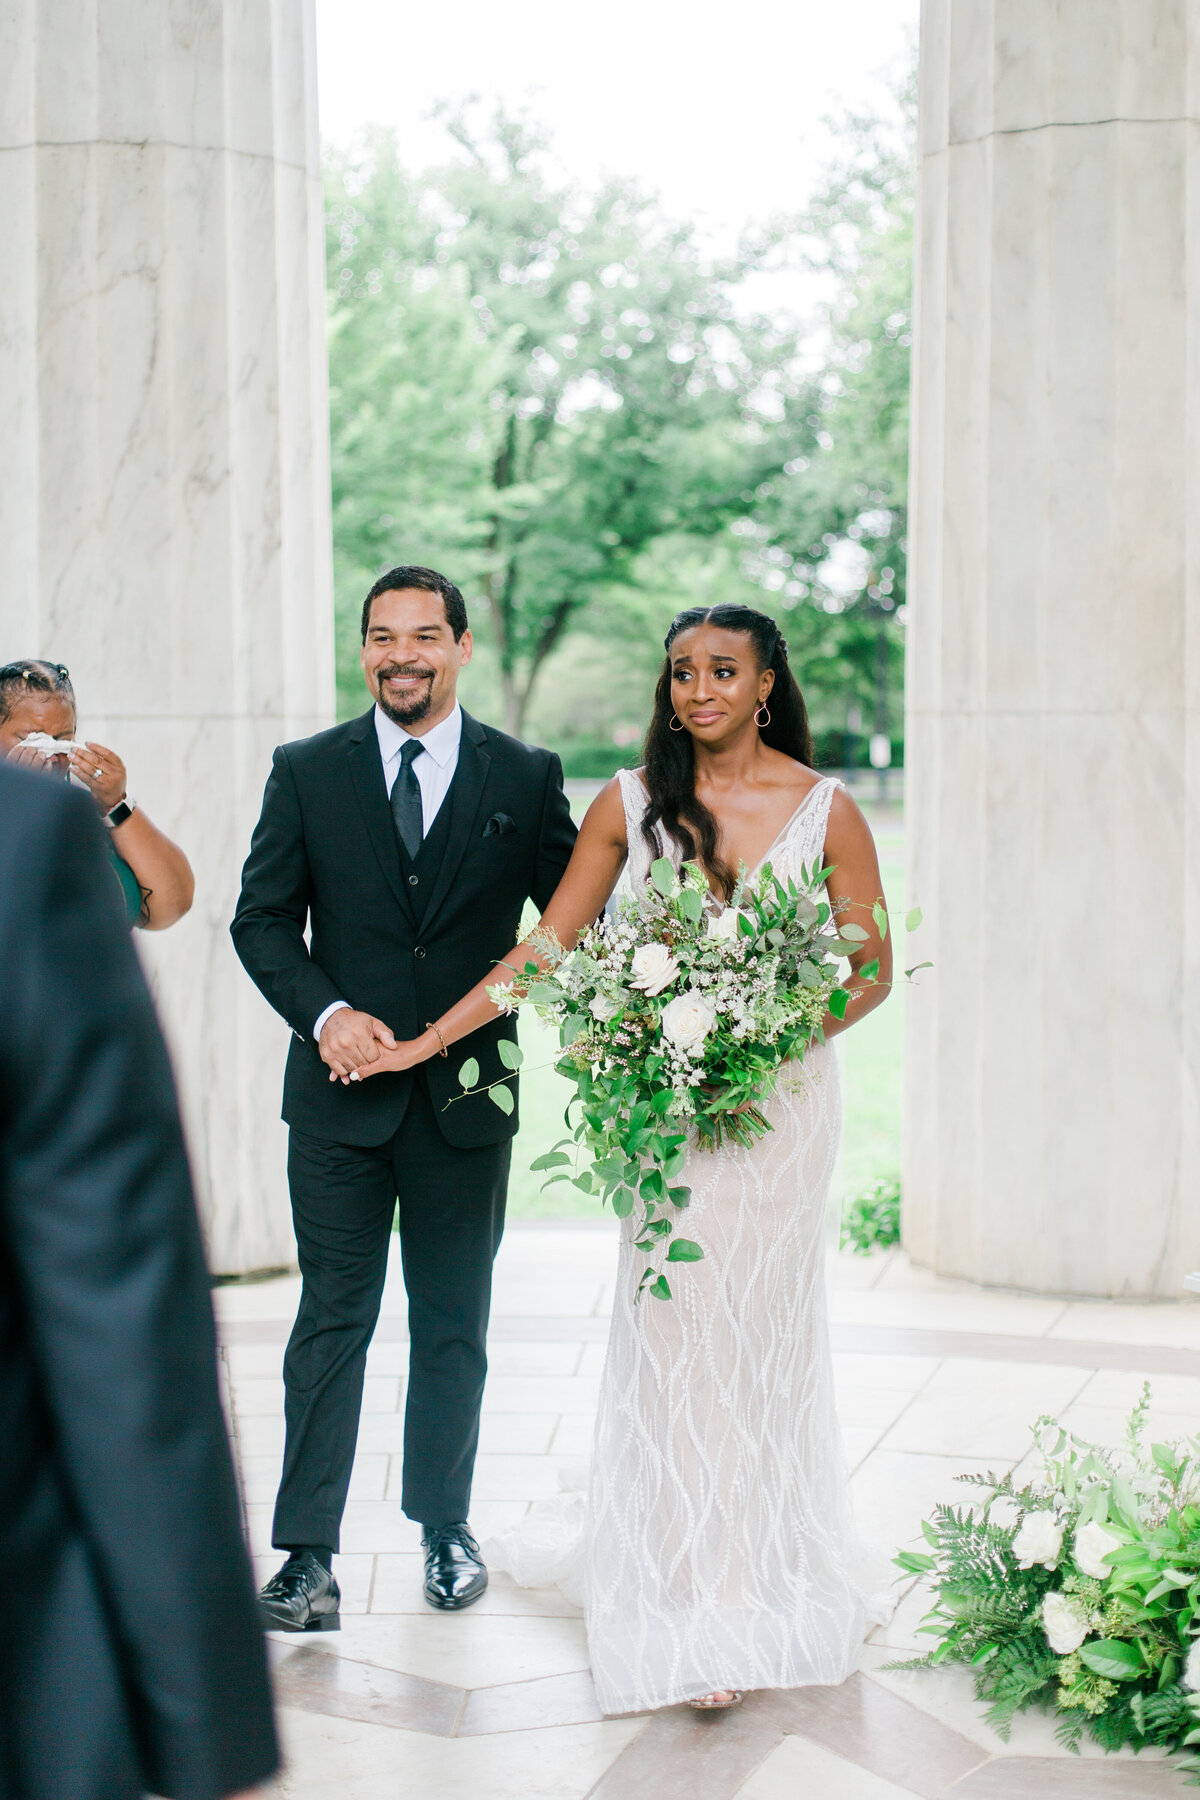 Solomon_Tkeyah_Micro_COVID_Wedding_Washington_DC_War_Memorial_MLK_Memorial_Linoln_Memorial_Angelika_Johns_Photography-9419